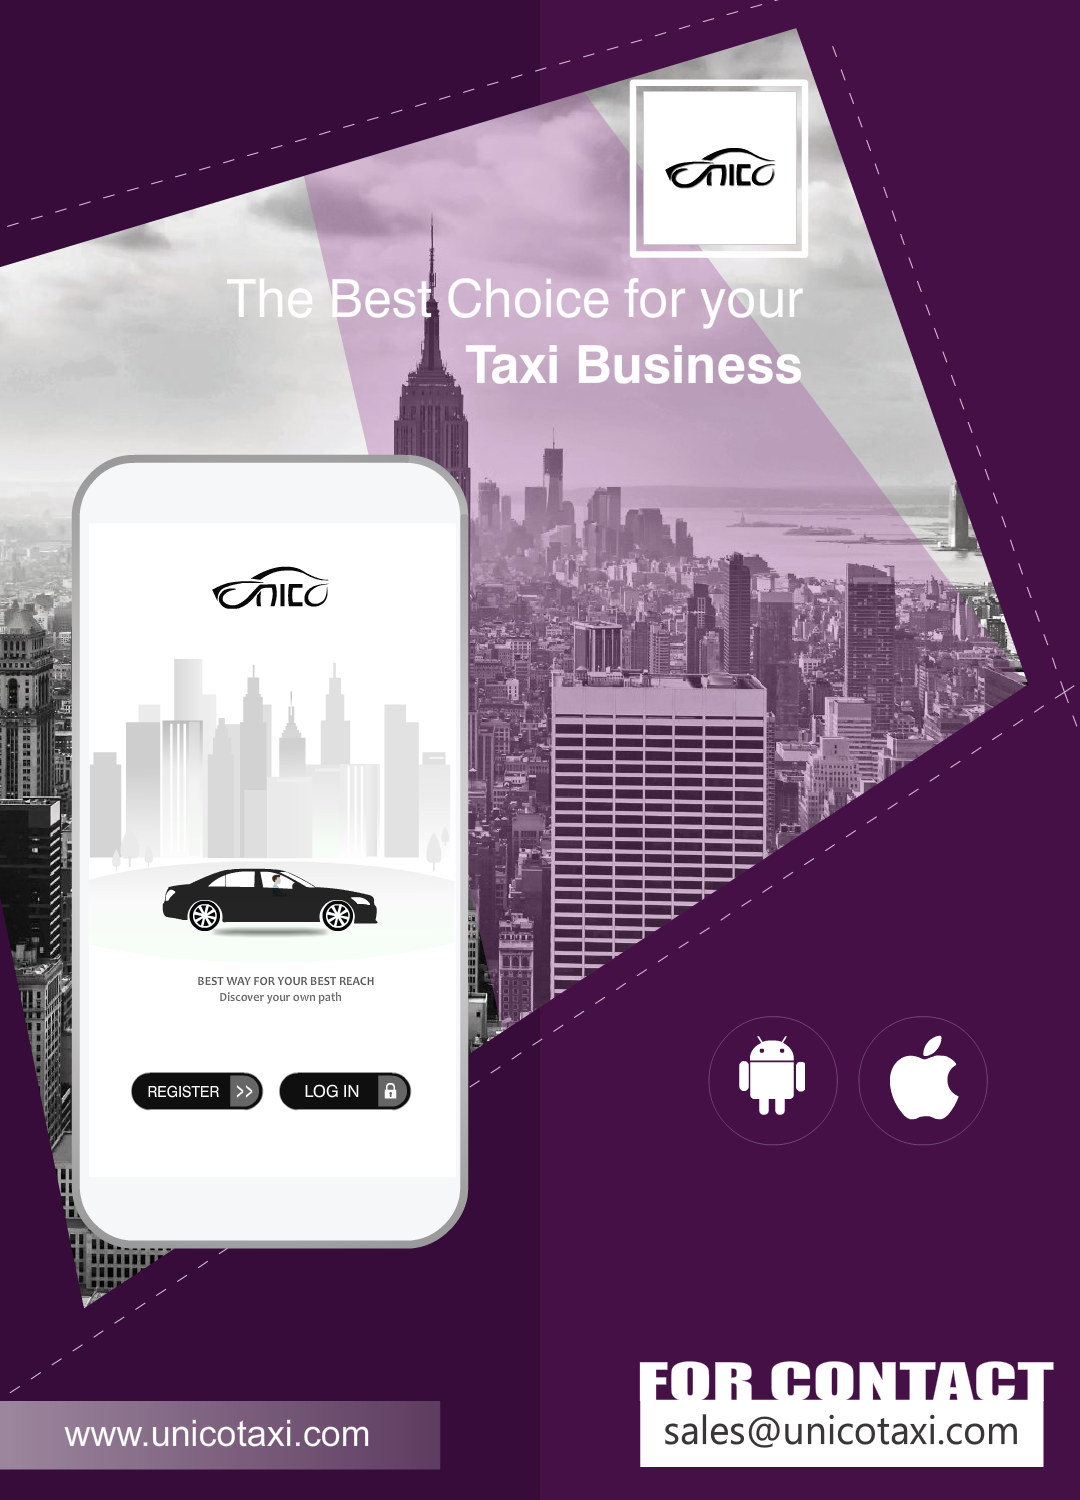 UNICO Taxi, a Versatile and Cost-Effective Taxi Solution